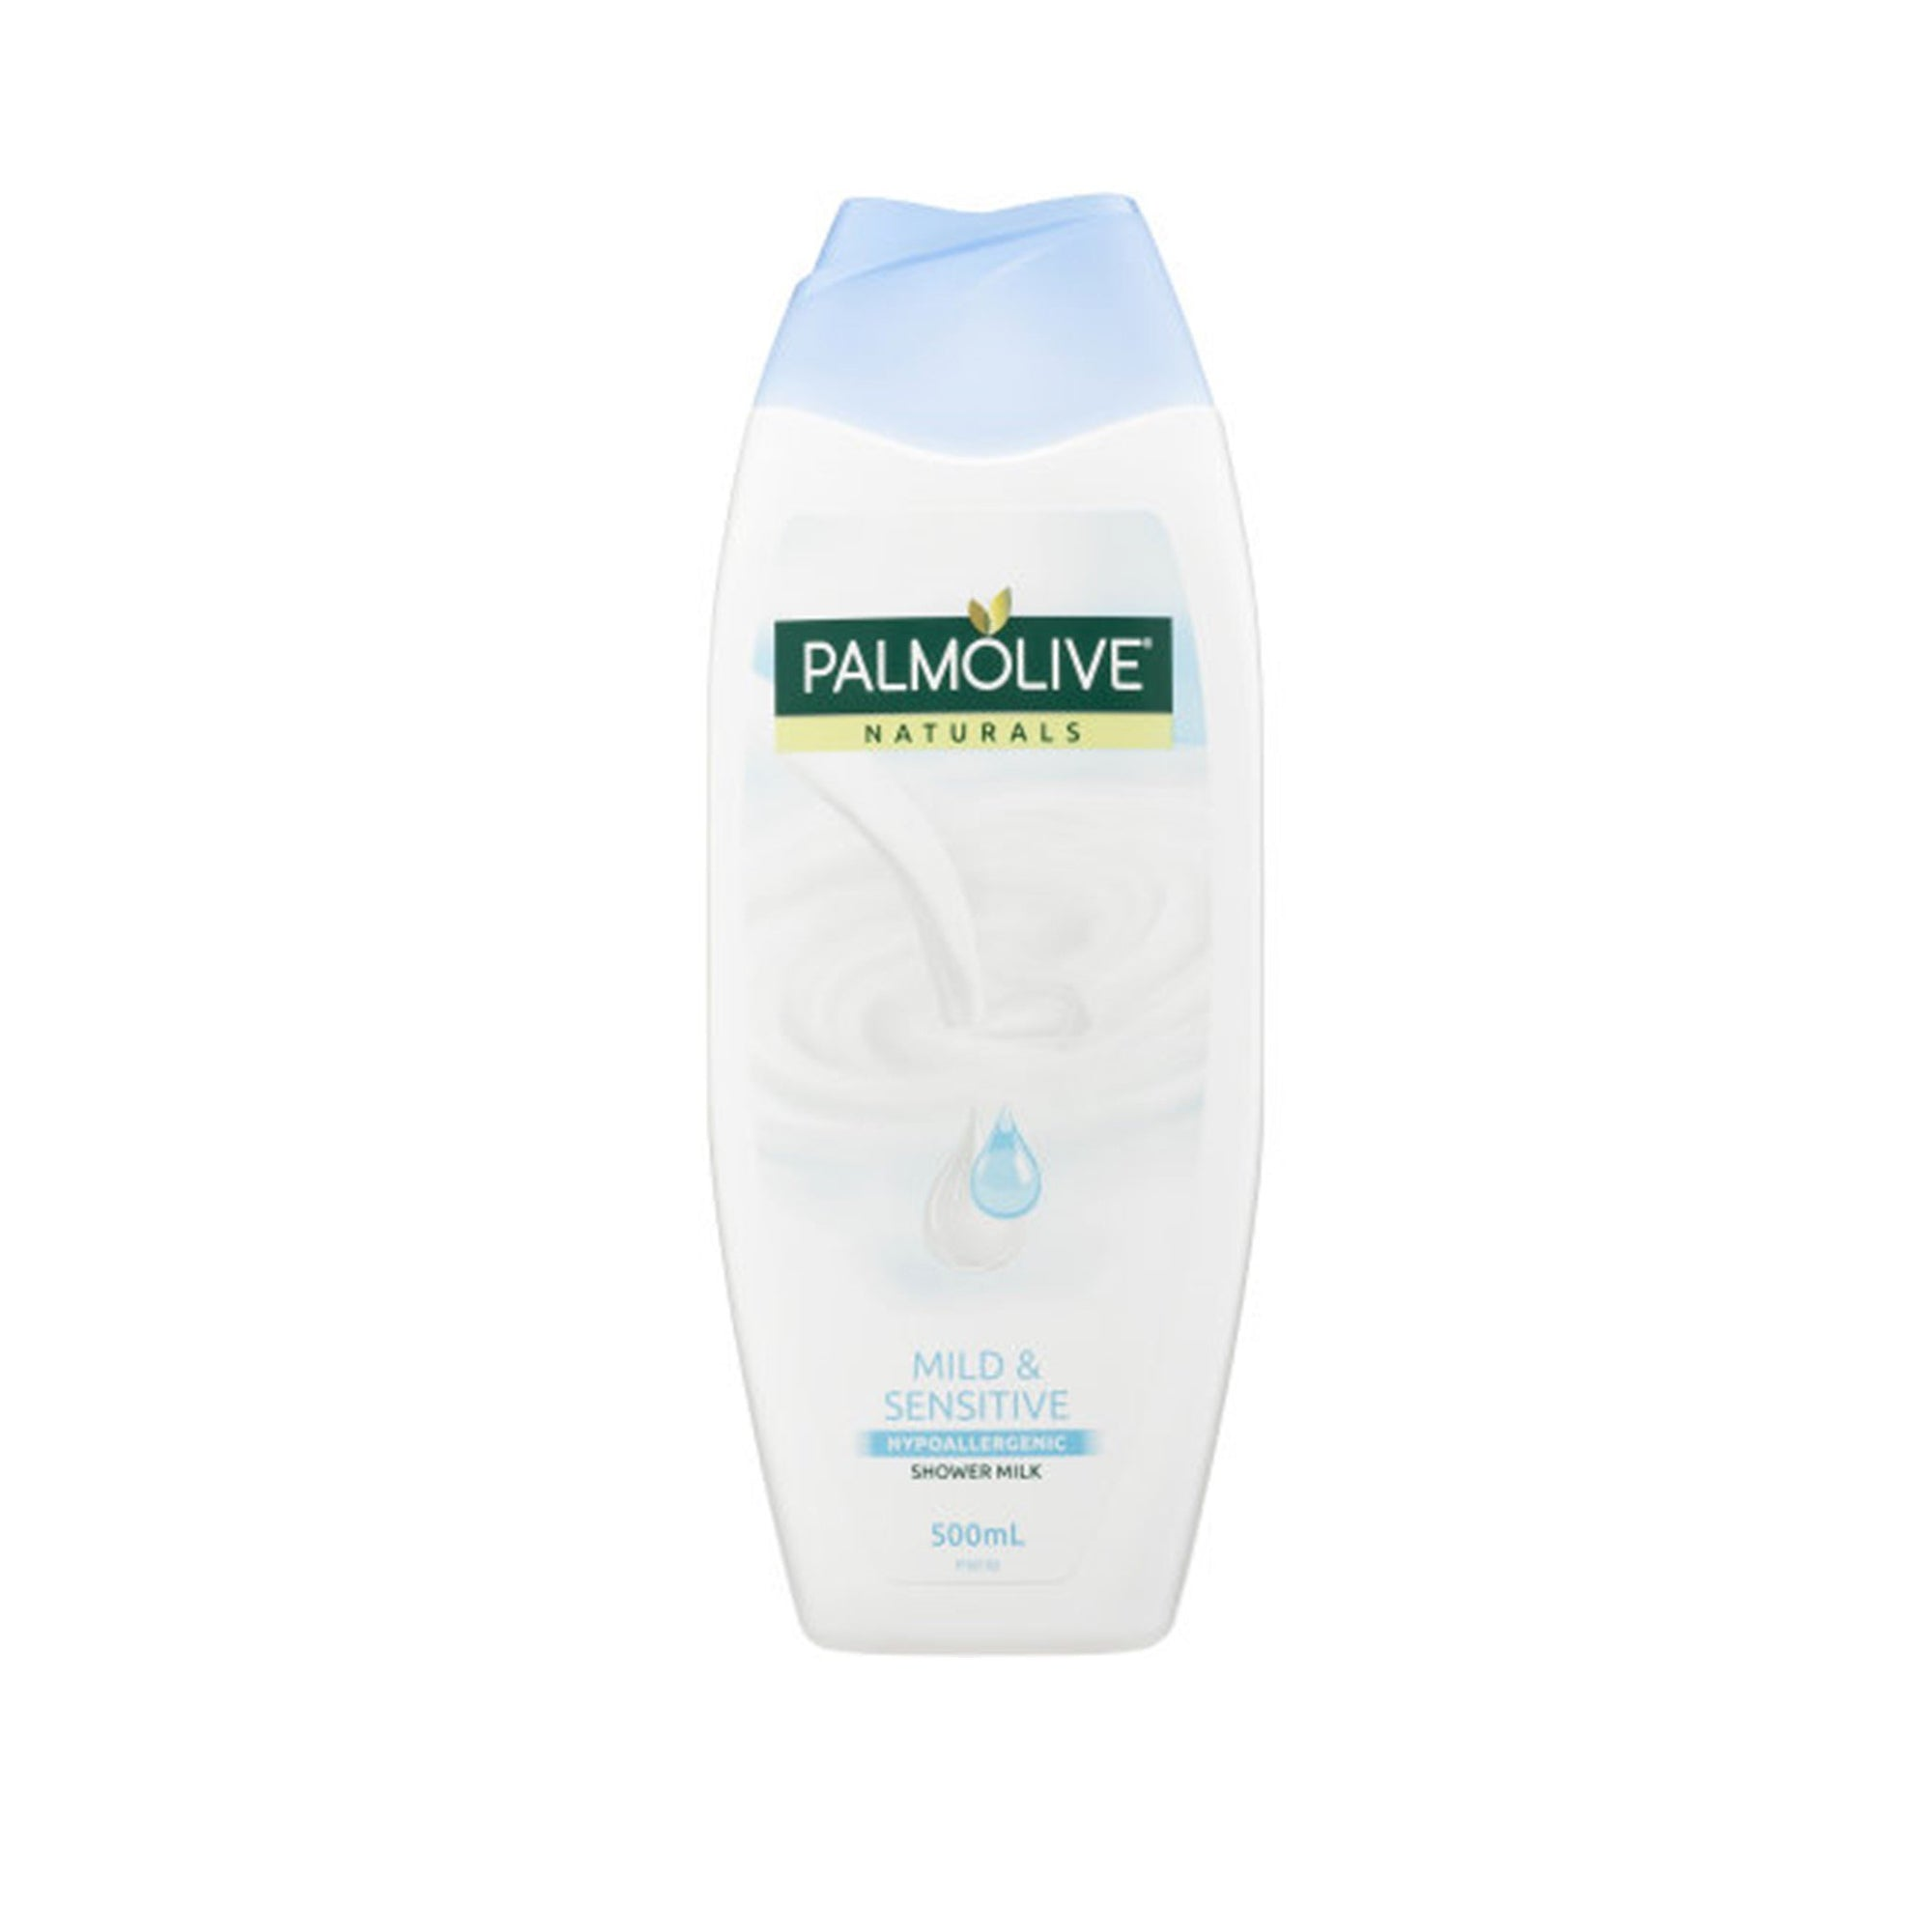 Palmolive Body Wash Mild & Sensitive 500ml